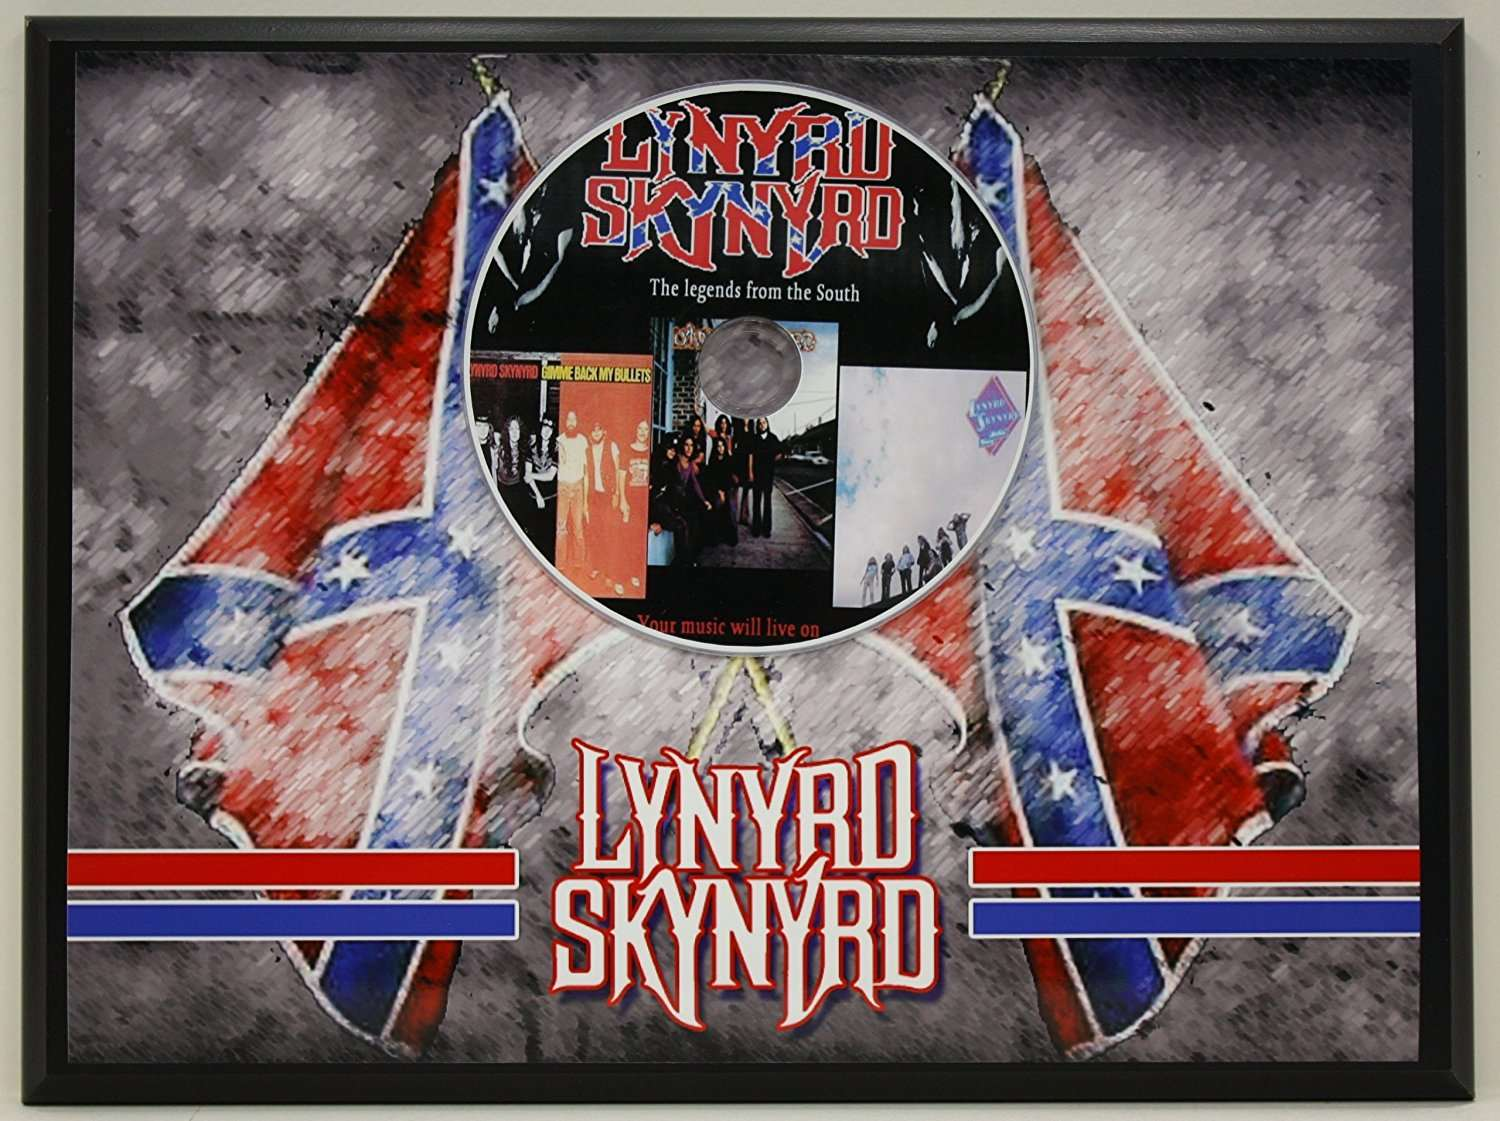 Lynyrd Skynyrd Limited Edition Picture Disc CD Rare Collectible Music  Display